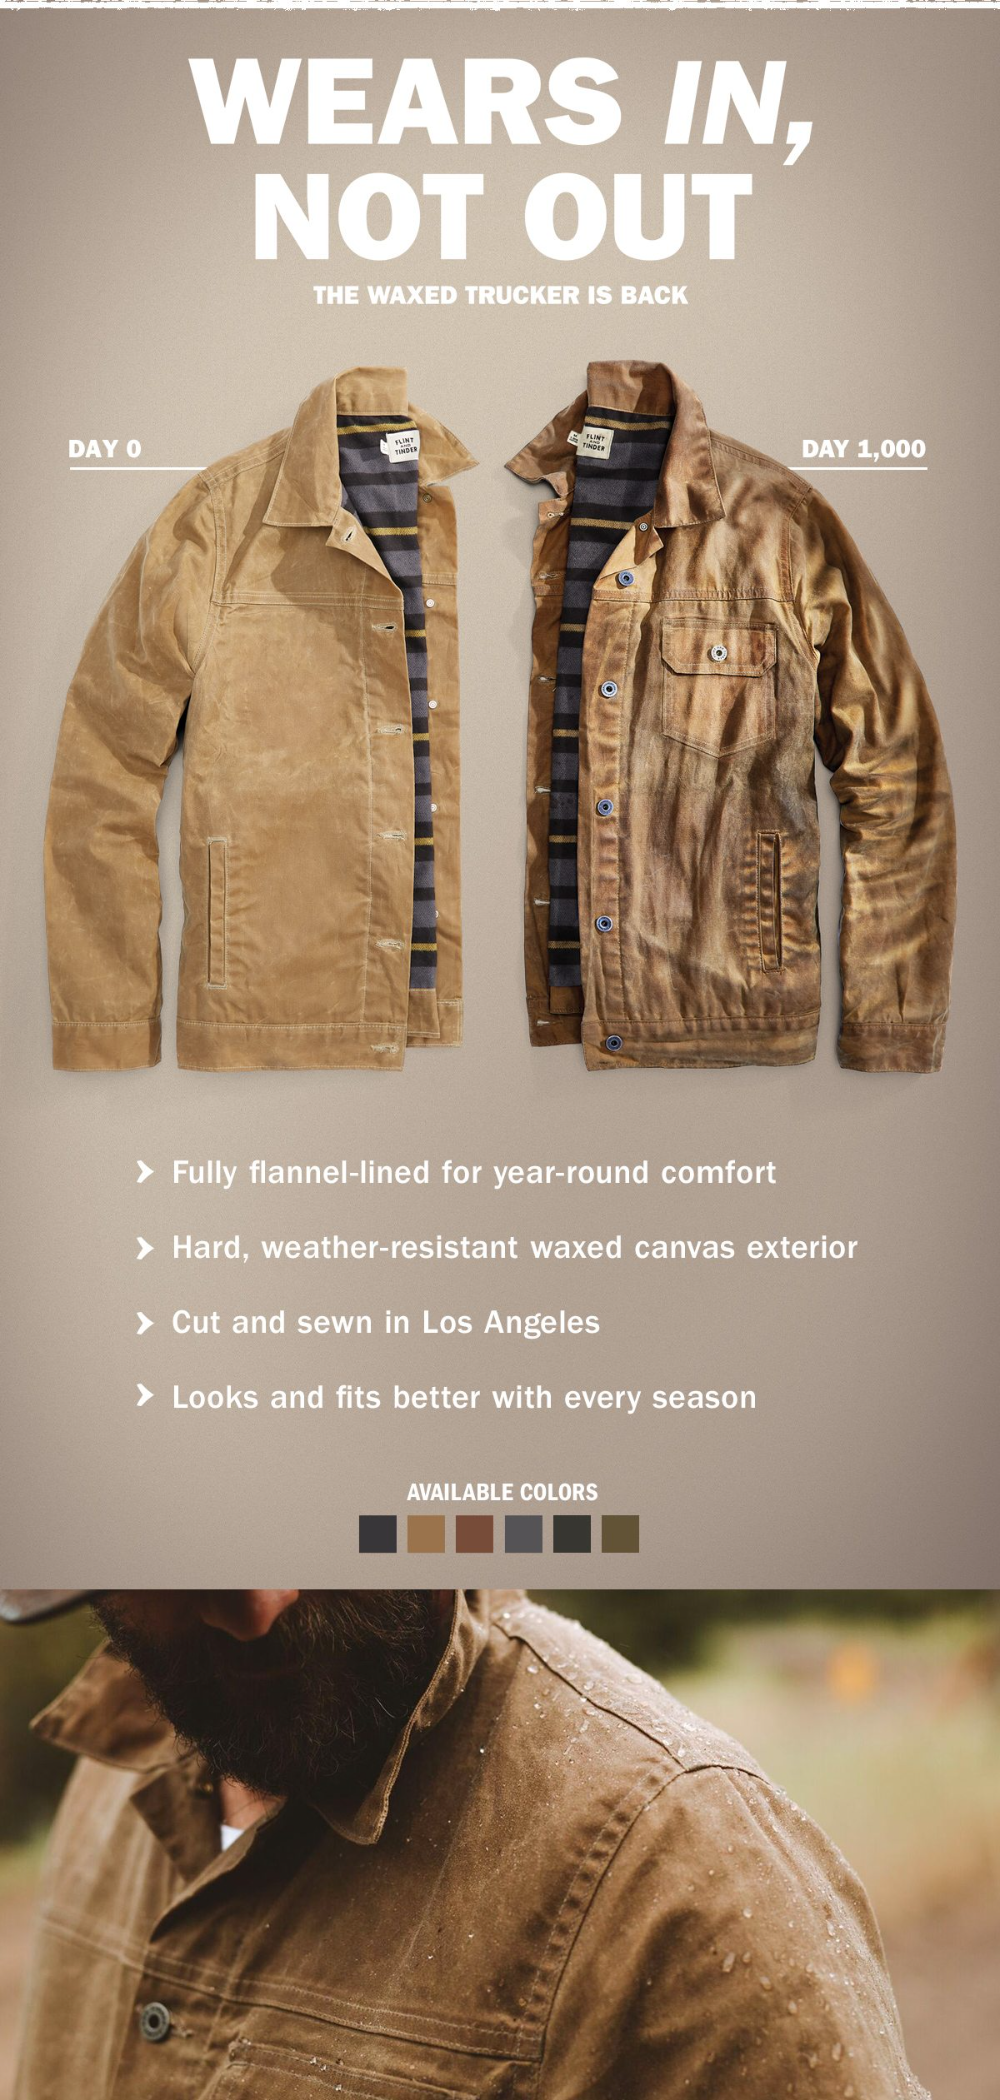 Our Most Requested Jacket Huckberry Email Archive Huckberry Jackets Waxed Canvas